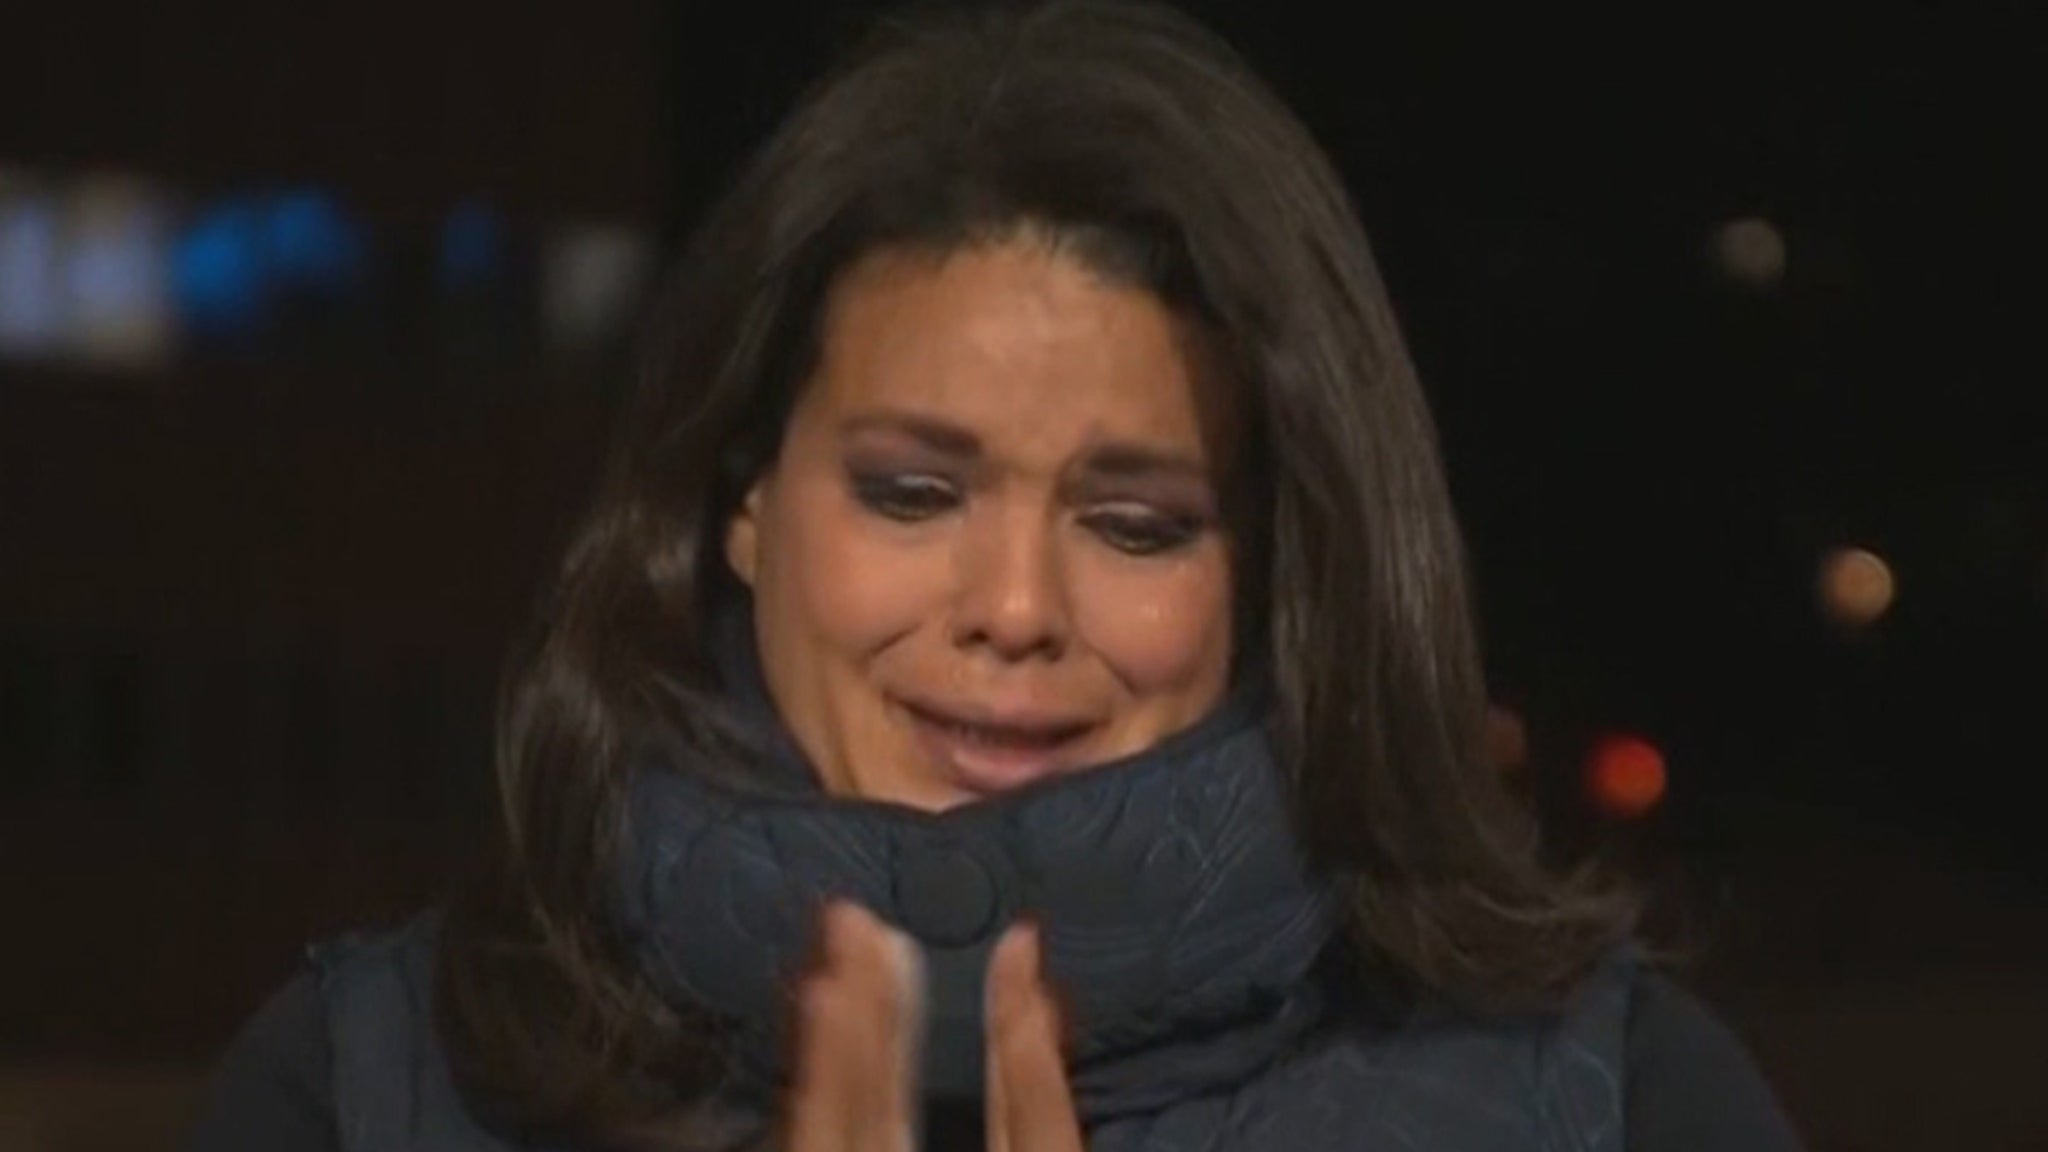 CNN's Sara Sidner Cries on Live TV Covering L.A.'s COVID Death Crisis